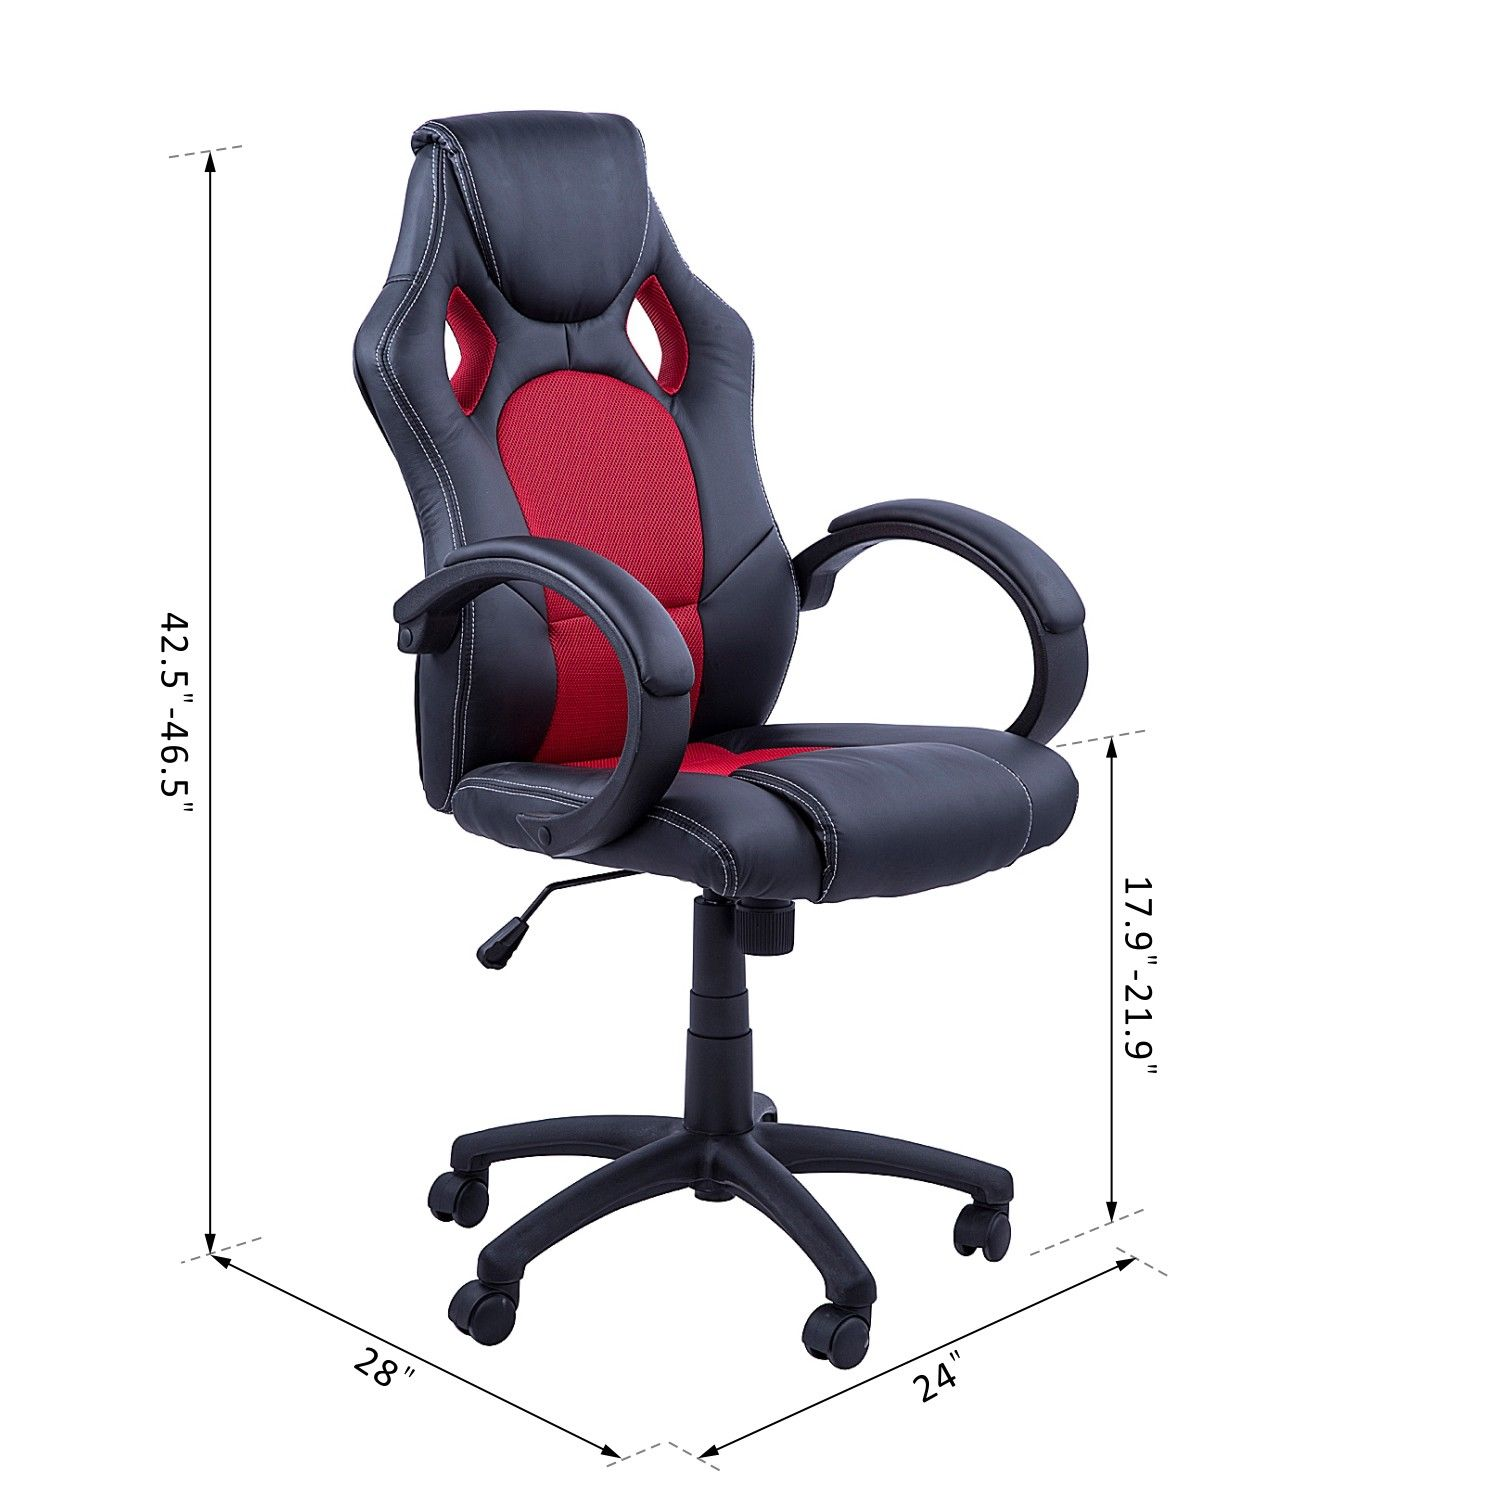 Gaming Sessel Ebay Details About Race Car Style Gaming Chair Hydraulic Office Computer Chair